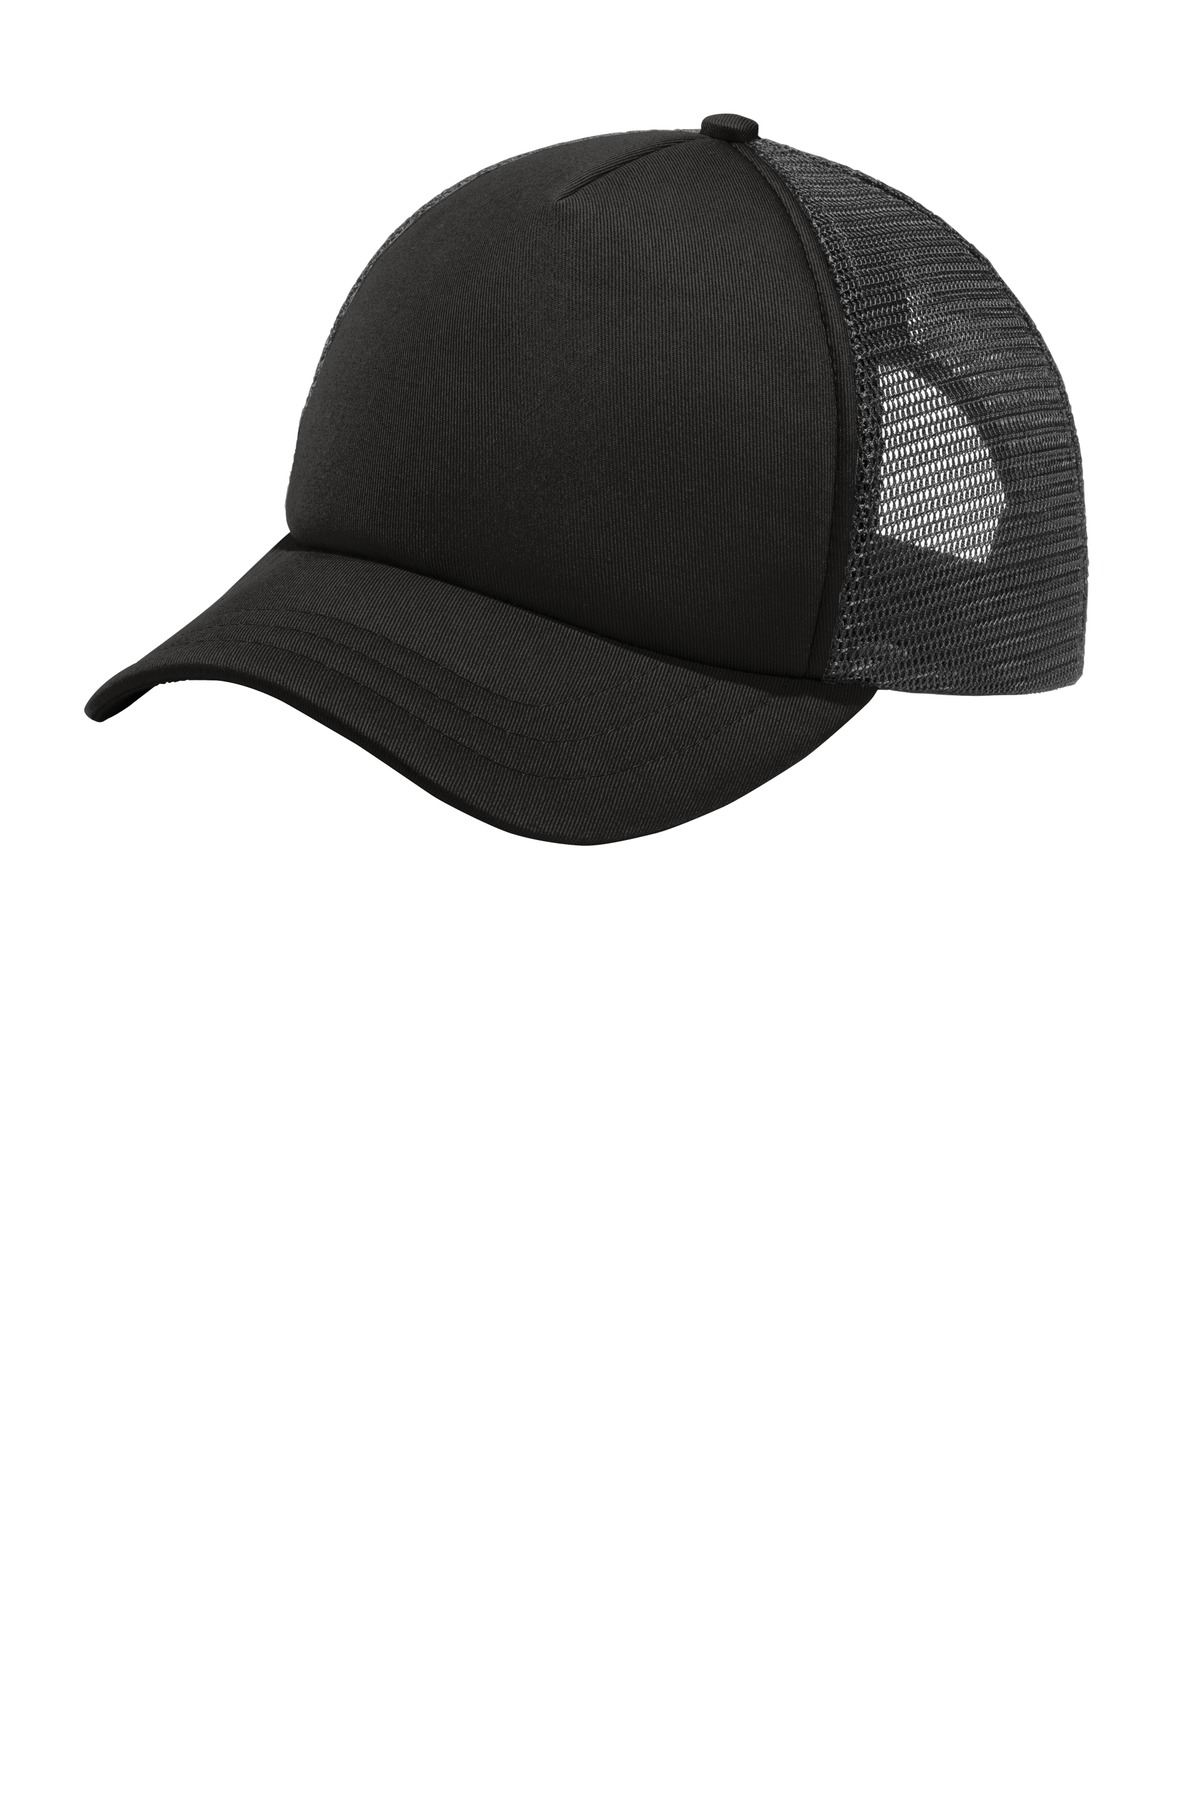 Port Authority 5-Panel Twill Foam Trucker Cap. C936